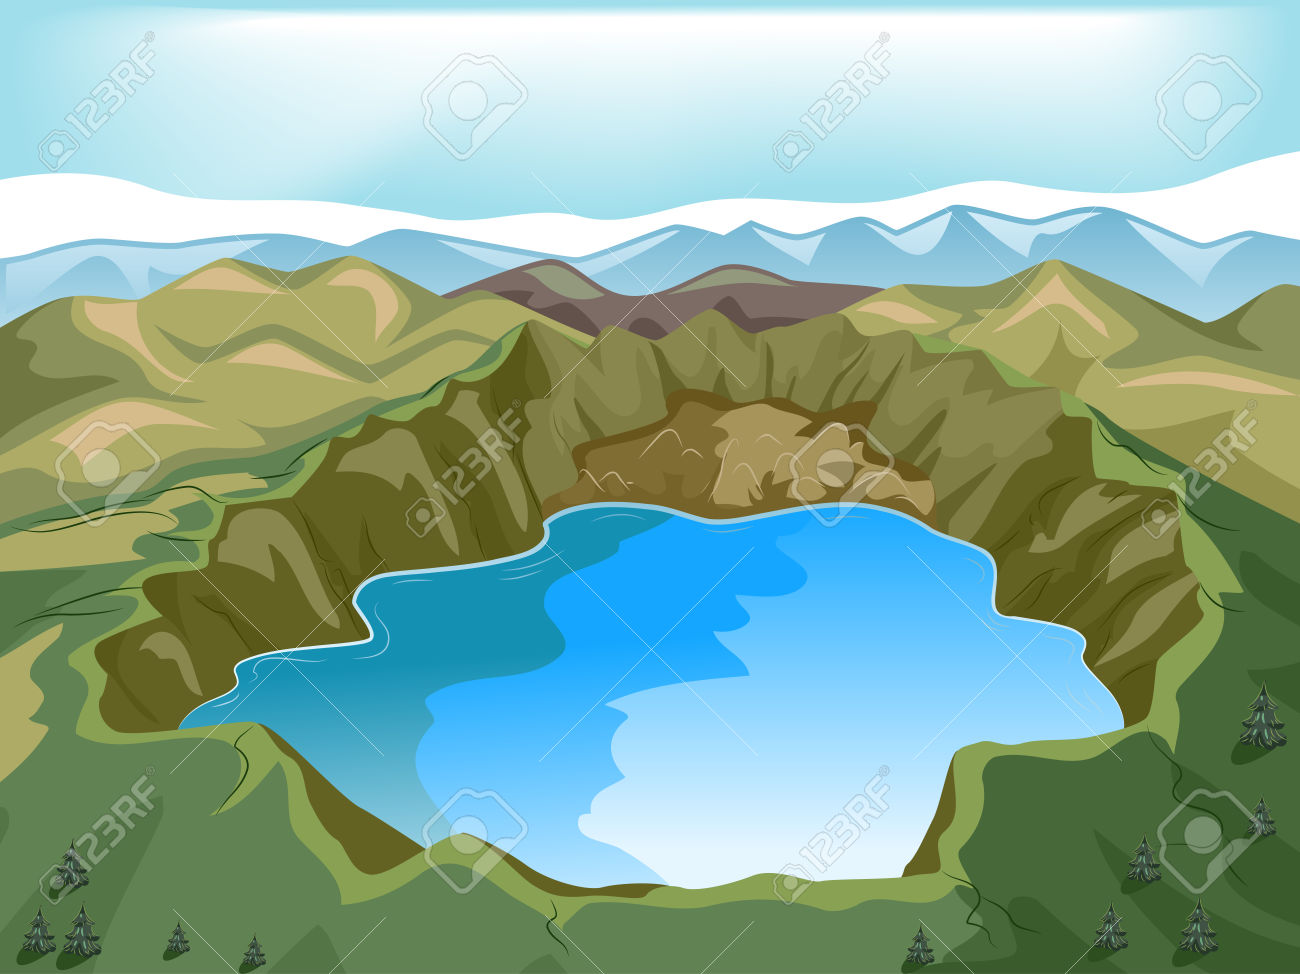 Lake clipart illustration. Of a crater panda